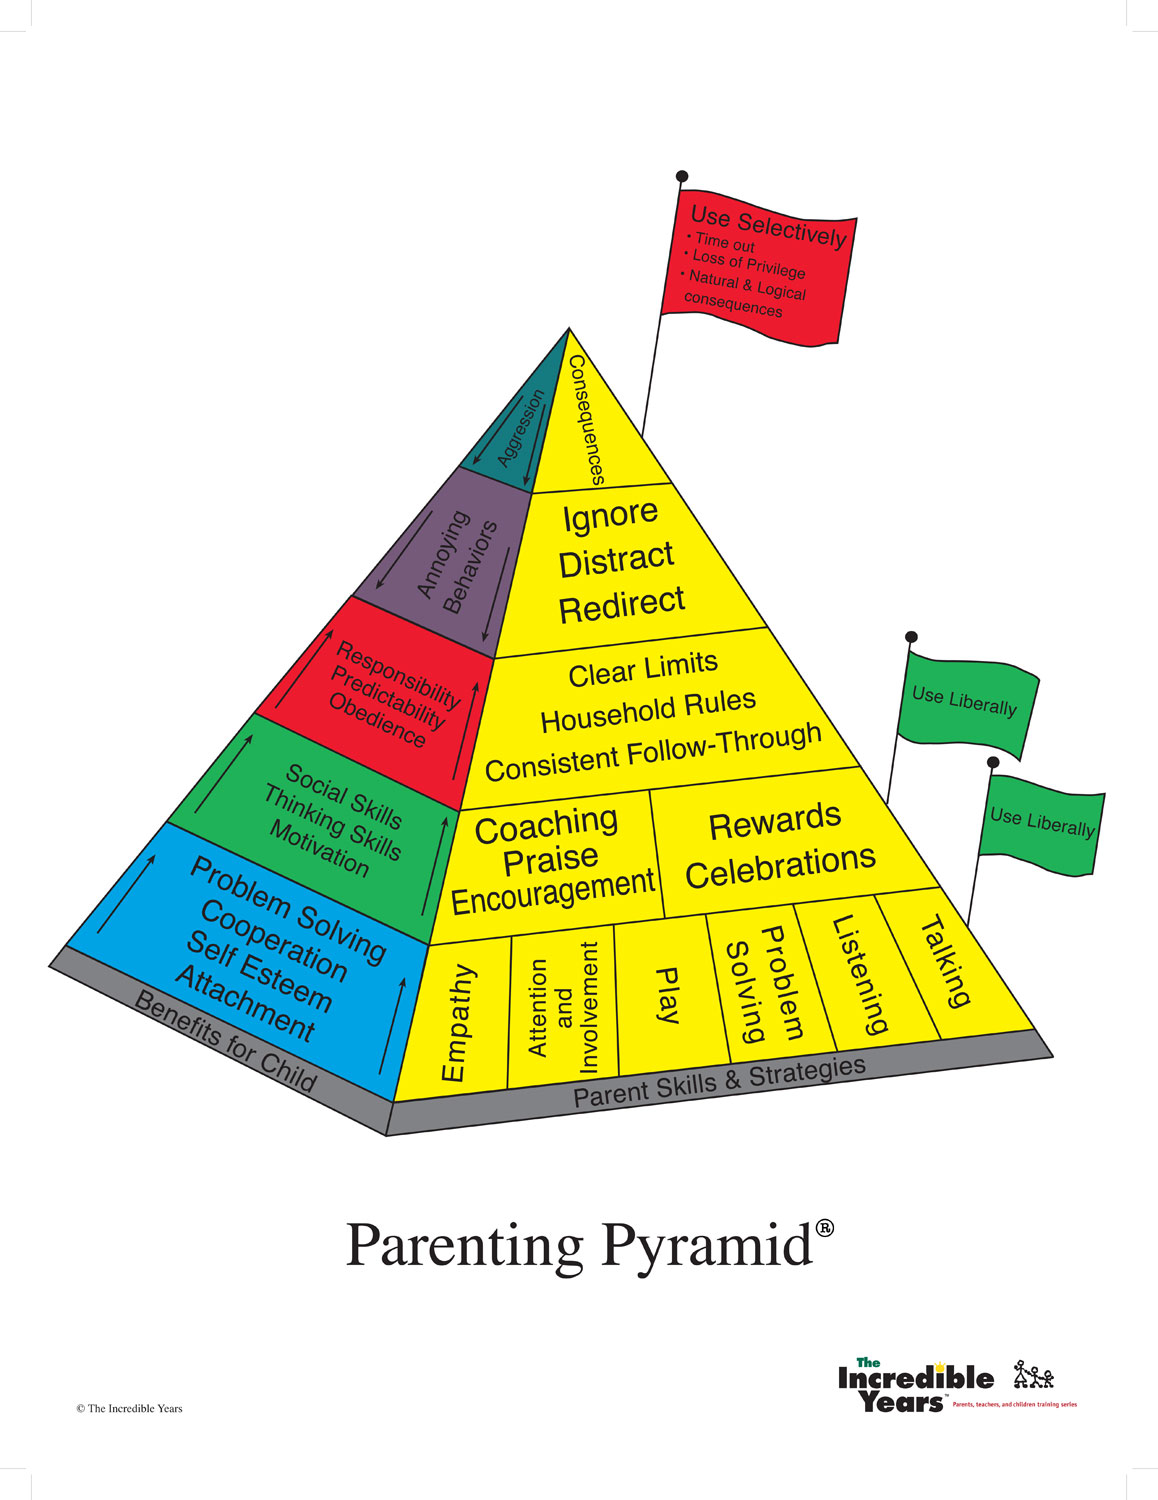 More Good Days Parenting Blog Research Resources